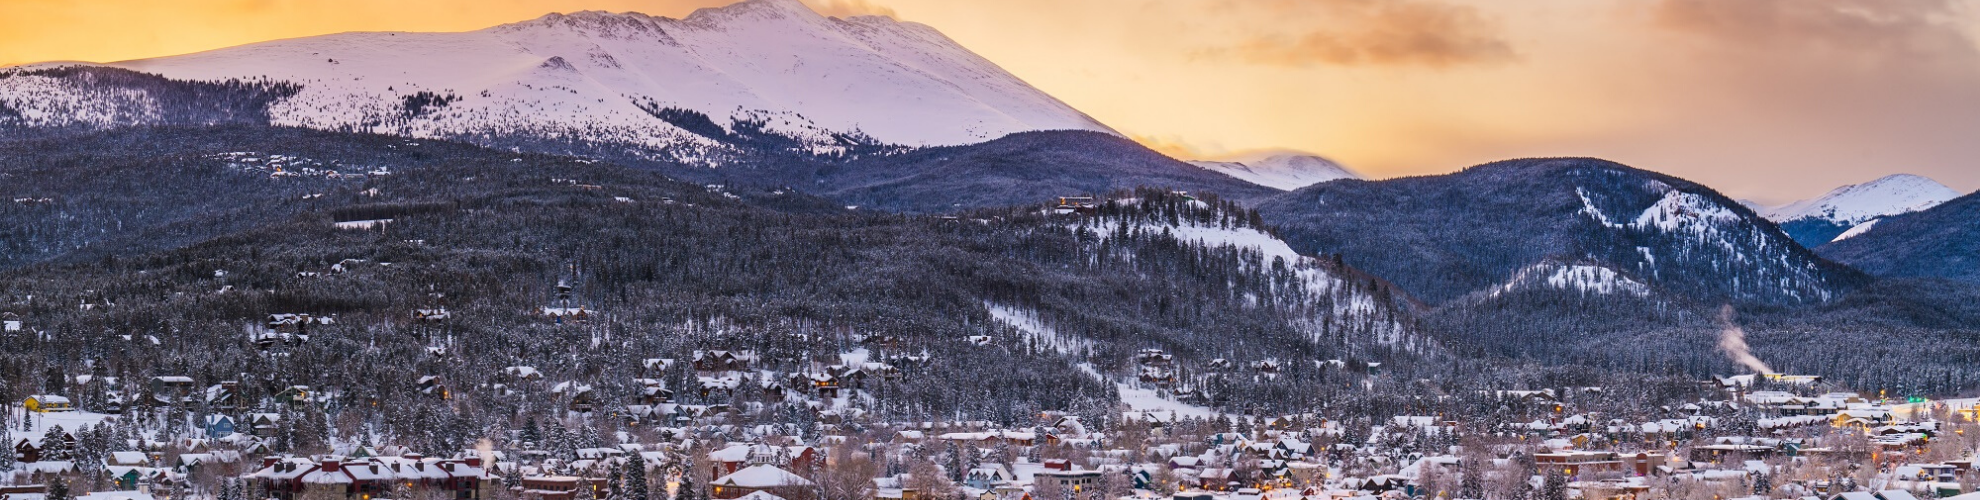 Best Ski Destinations for President's Day Weekend